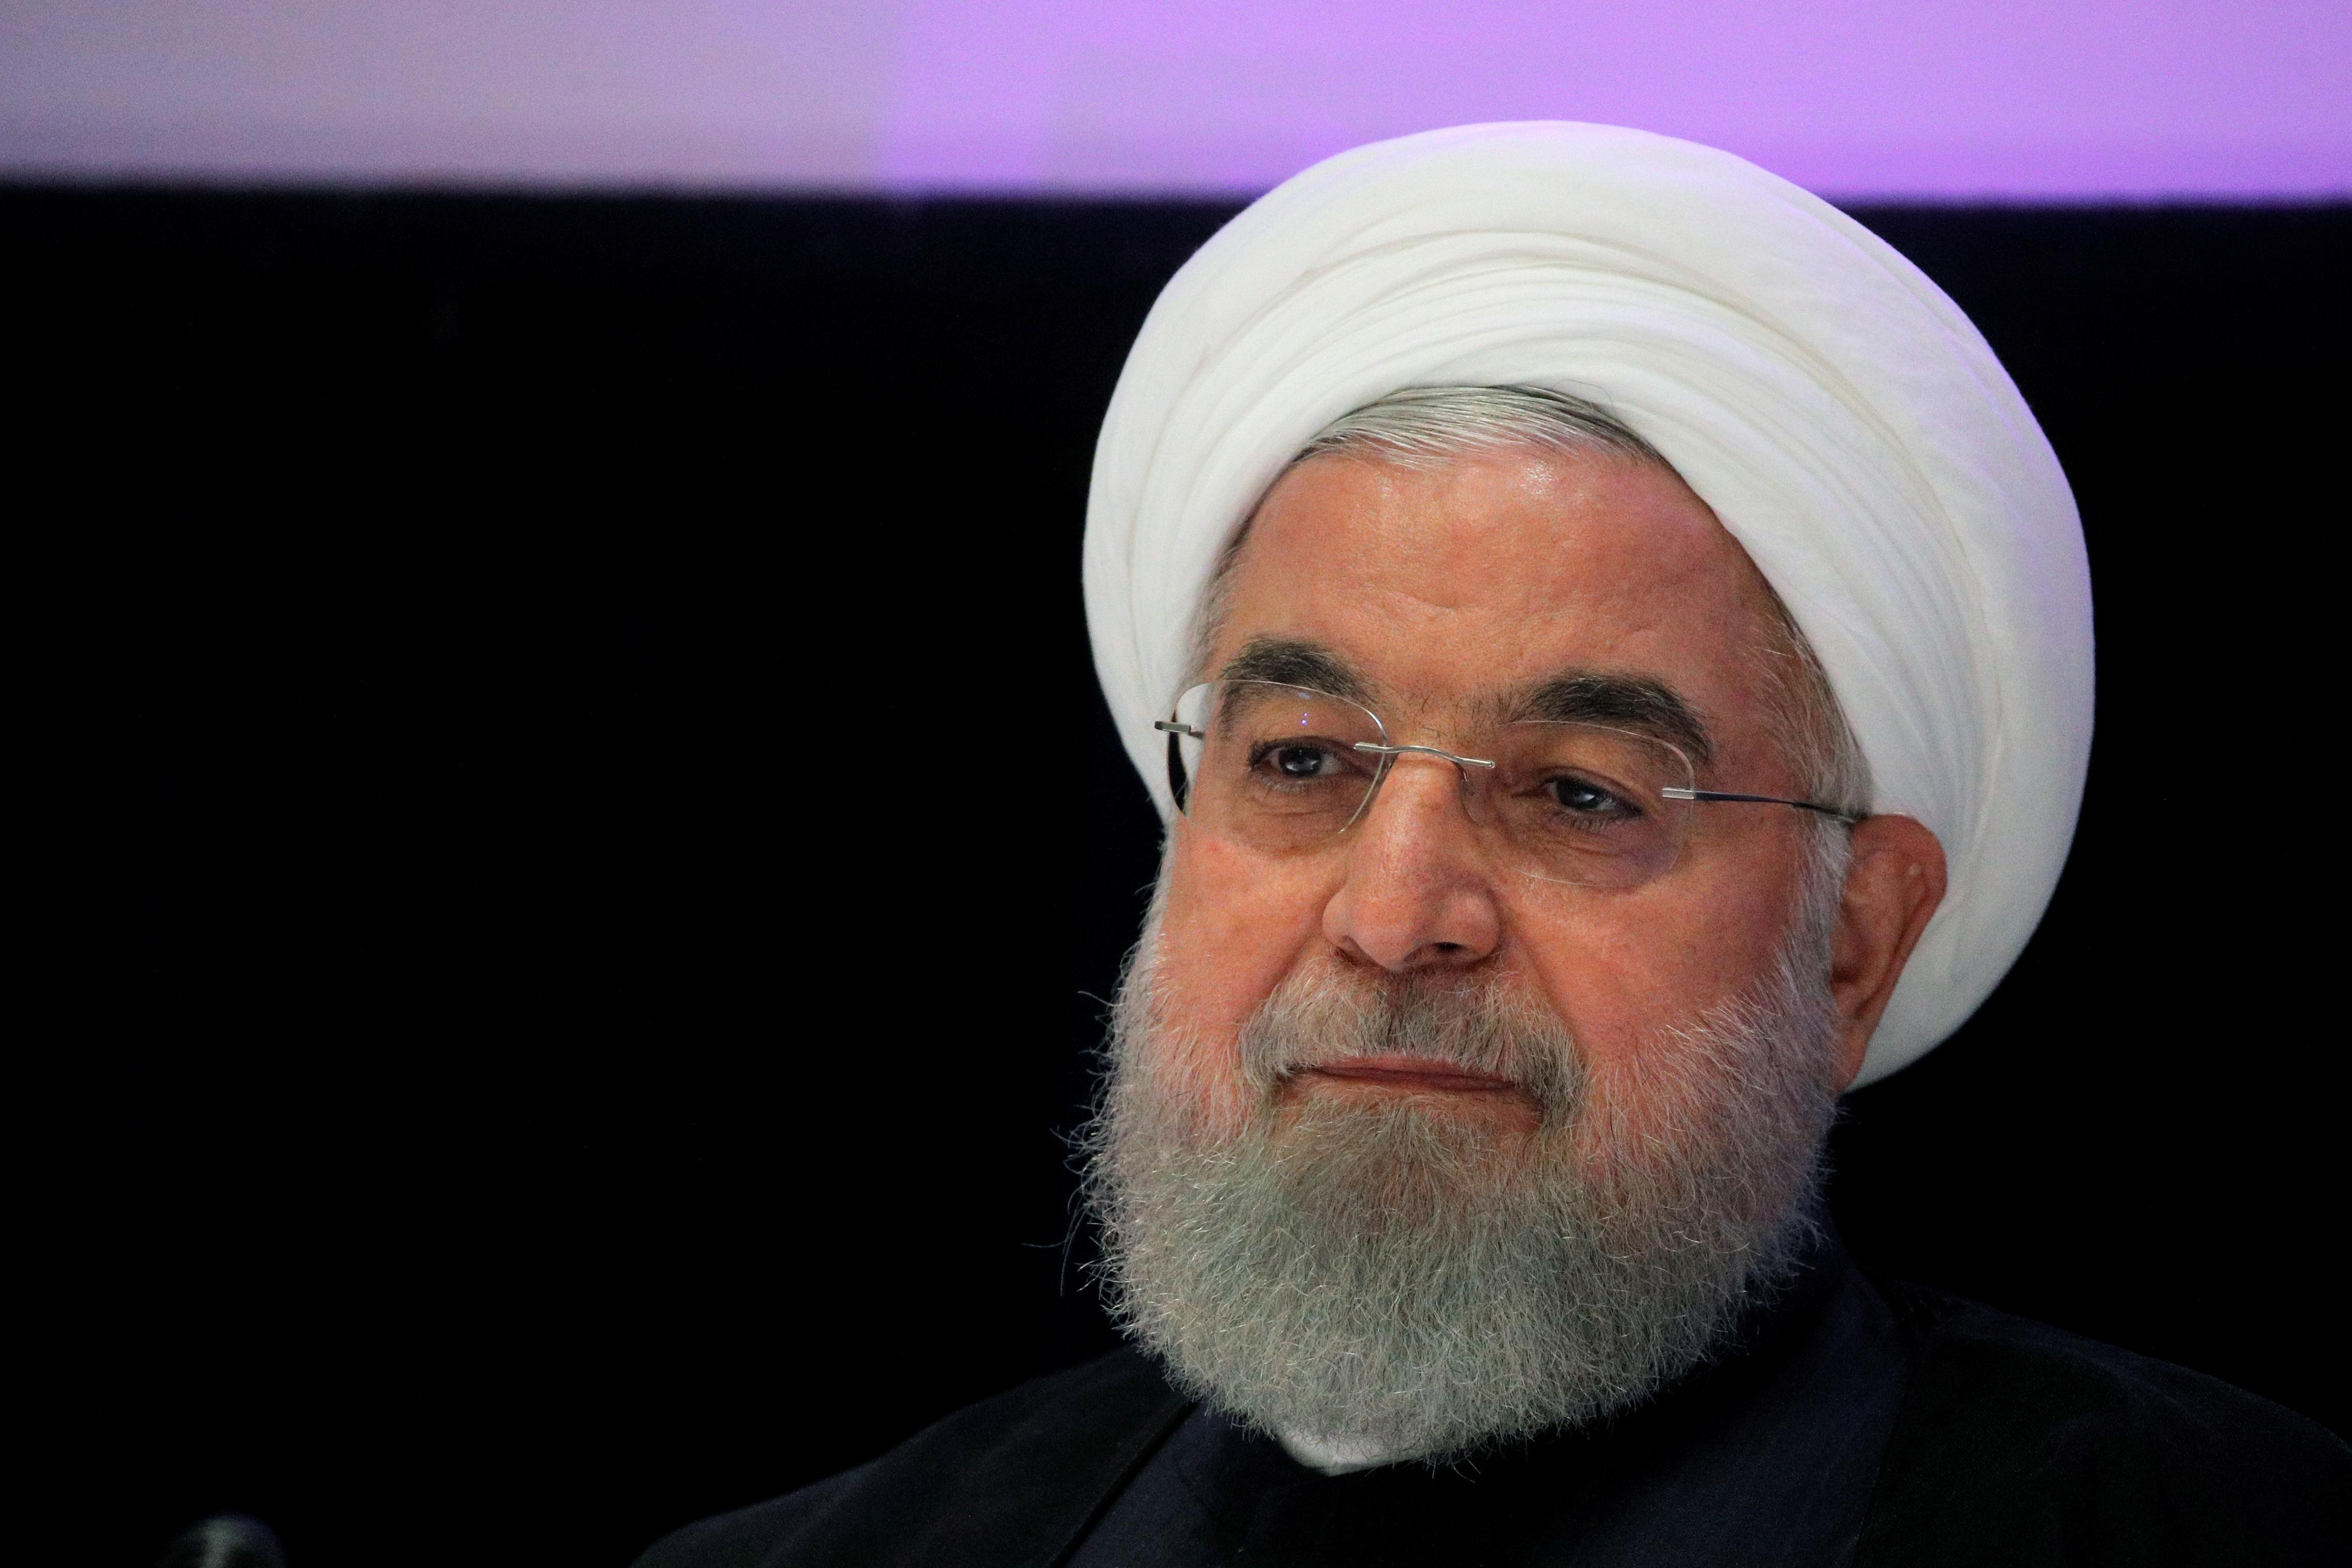 Current U.S. government is the worst in America's history: Iran...